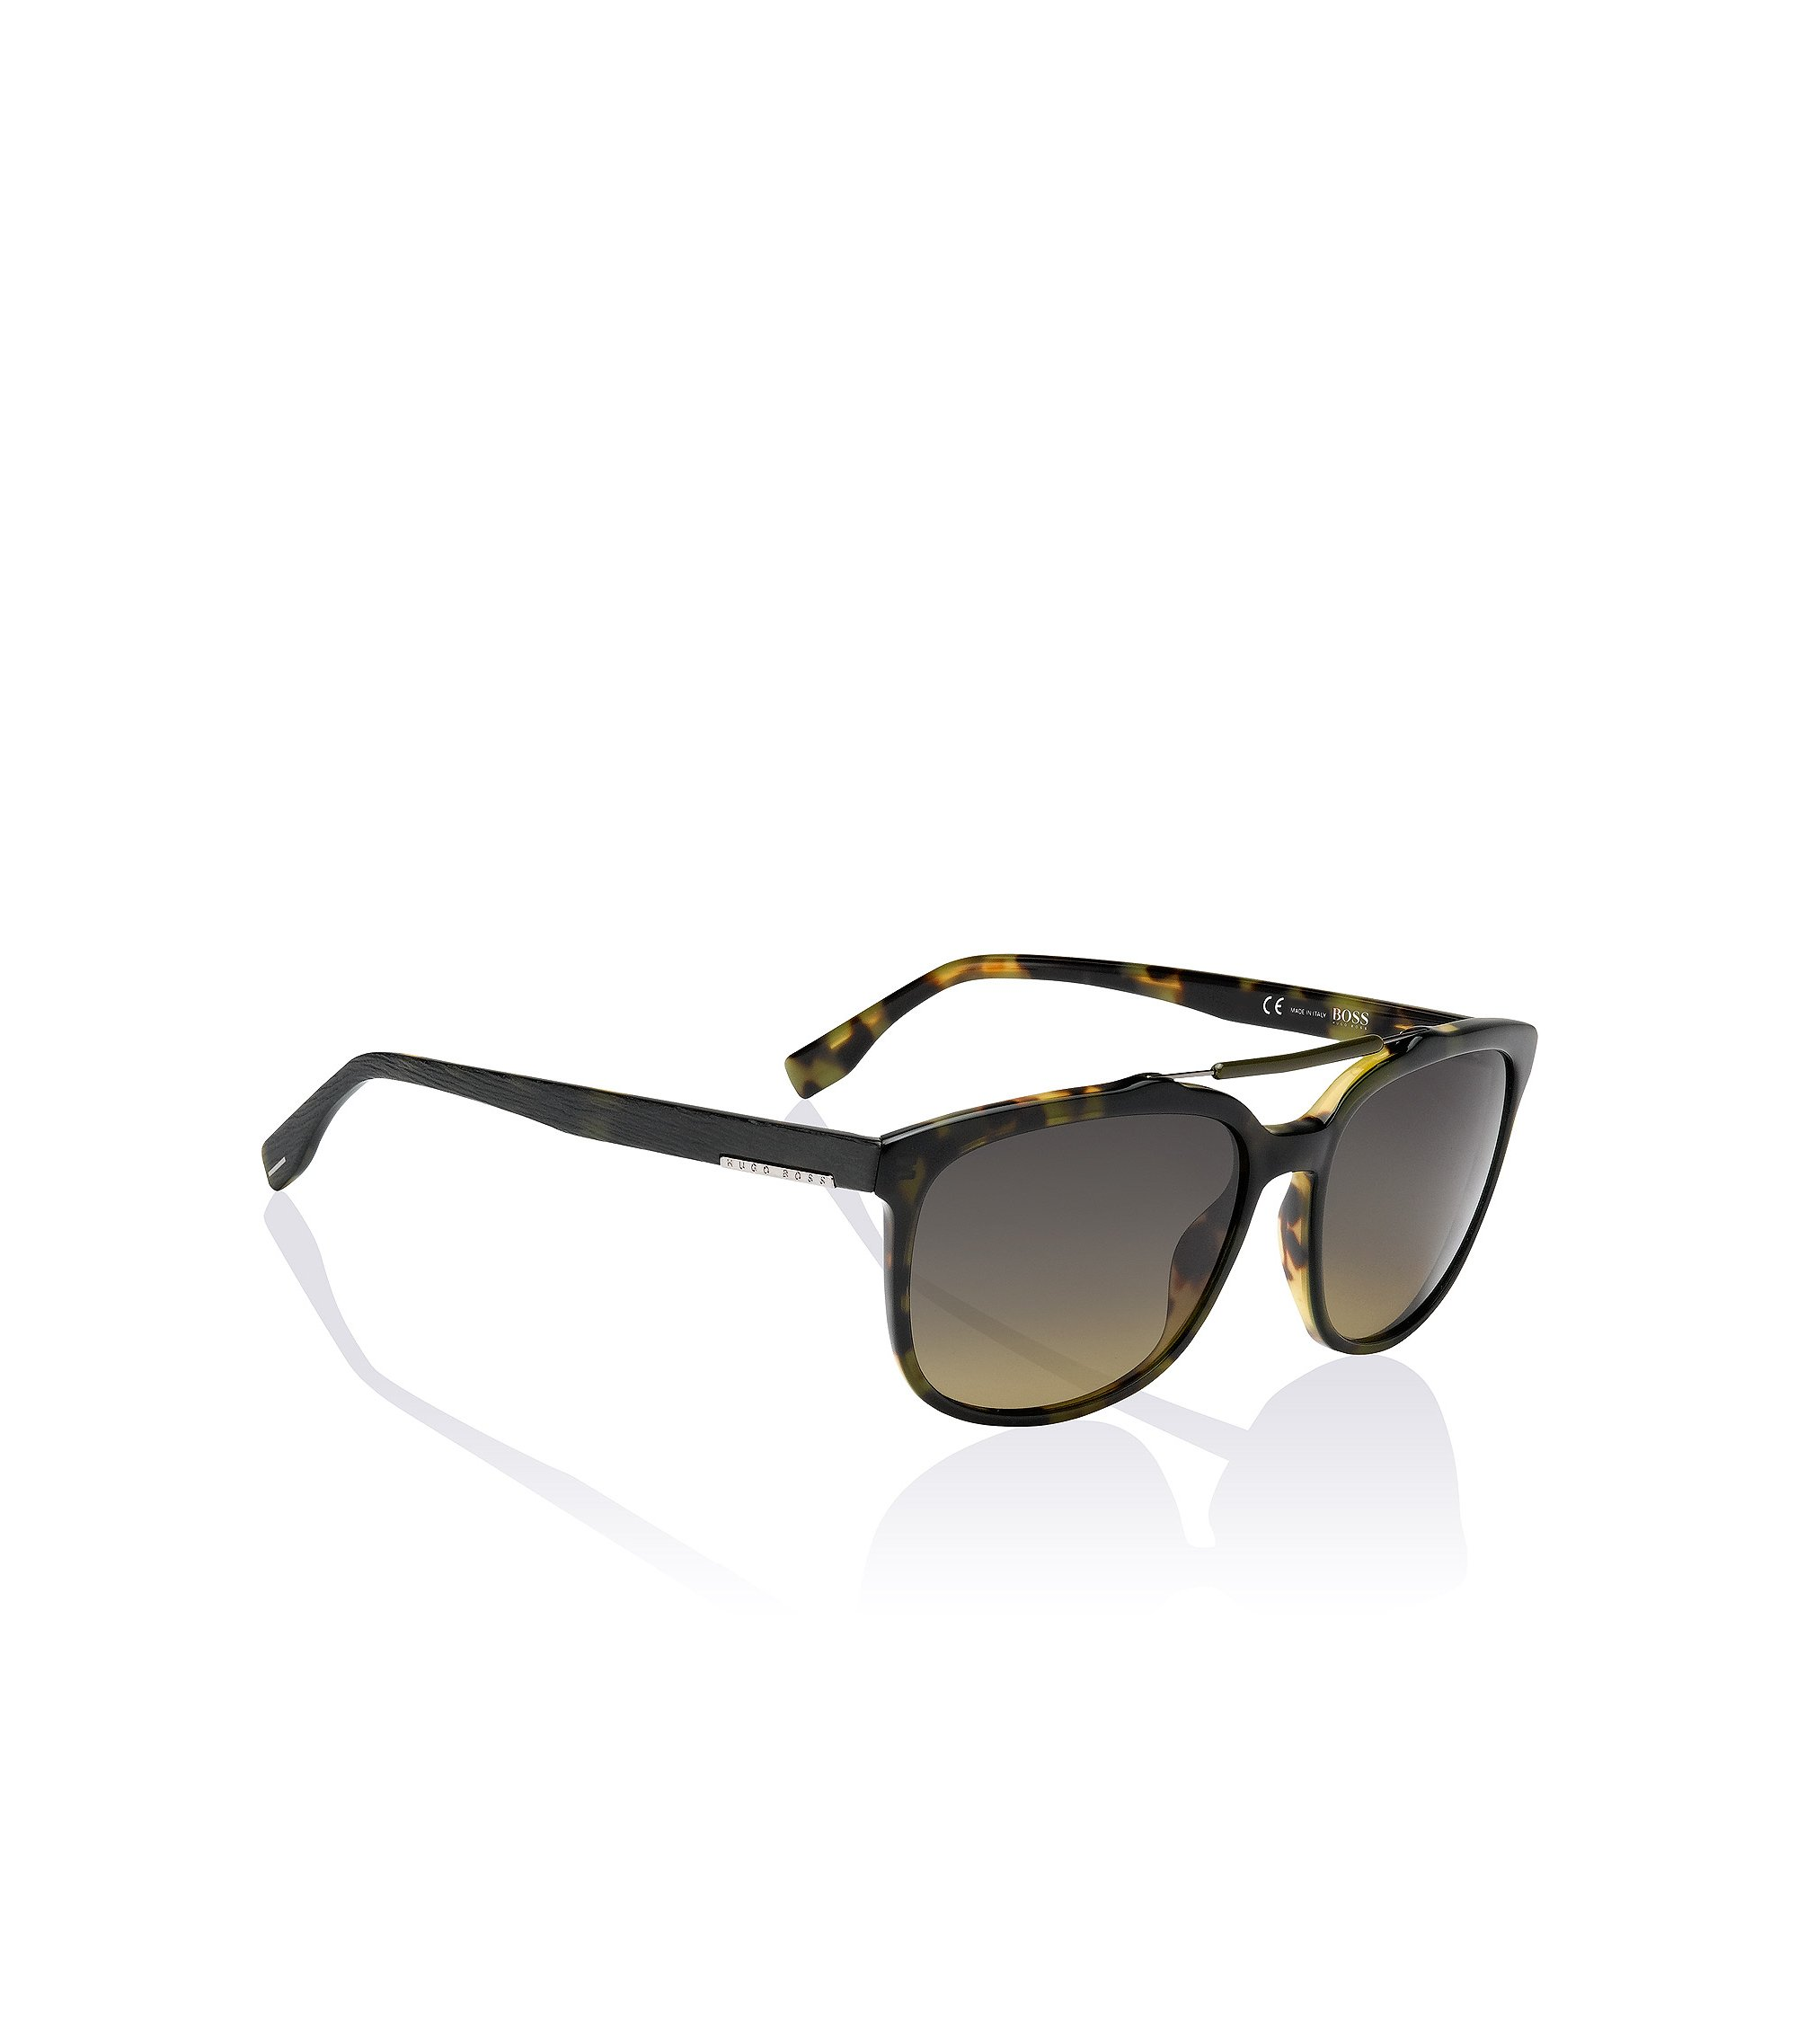 Sonnenbrille ´BOSS 0636/S` aus Acetat, Assorted-Pre-Pack